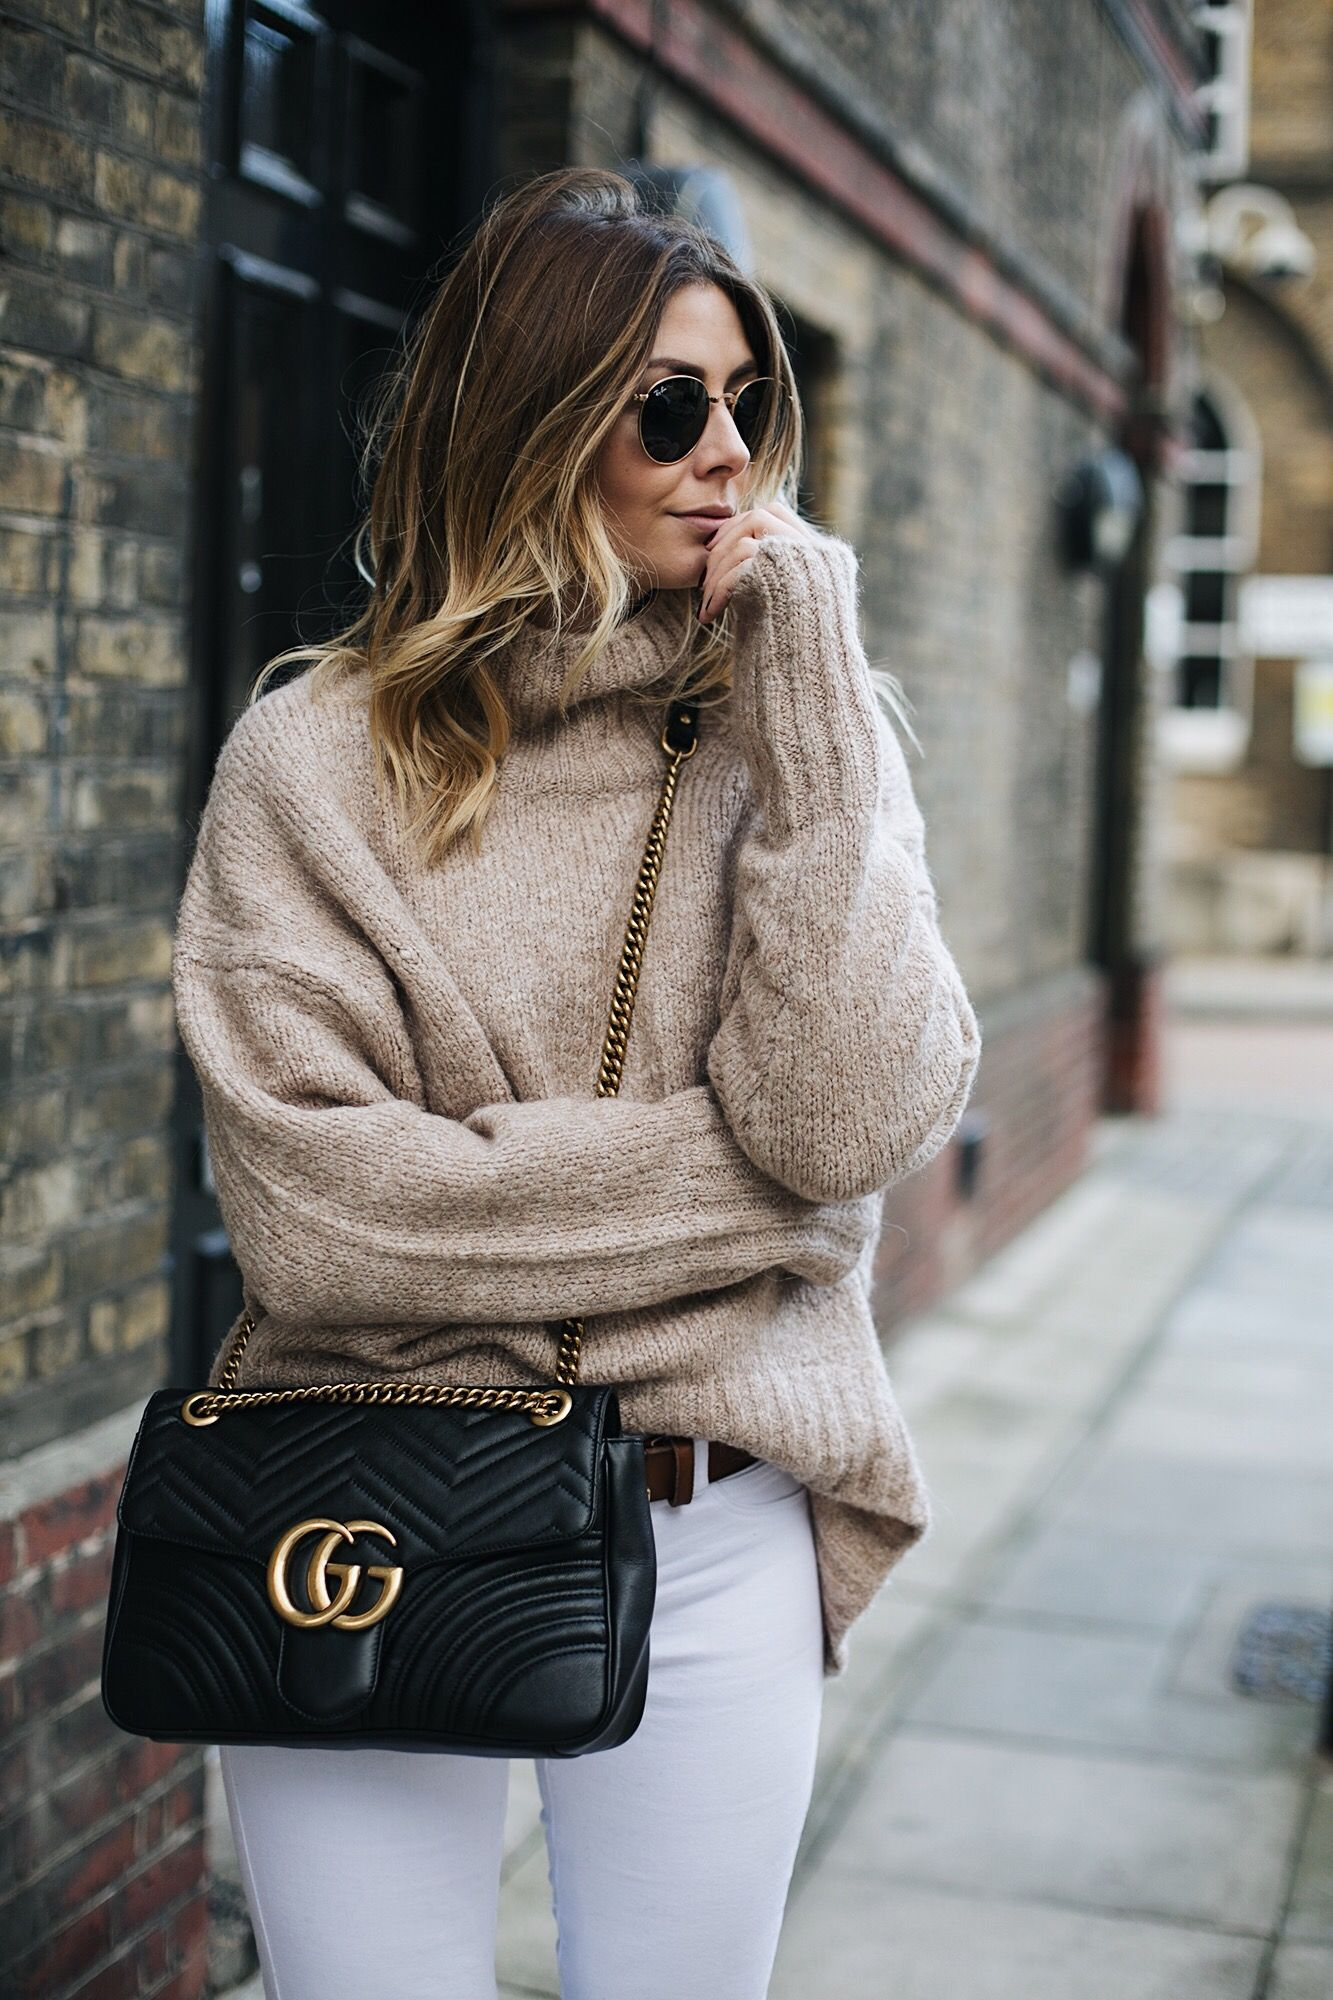 e800067fc Emma Hill wears Beige chunky sweater, white skinny jeans medium black  leather Gucci Marmont Matelasse bag, tan belt, Round gold metal frame  Rayban ...